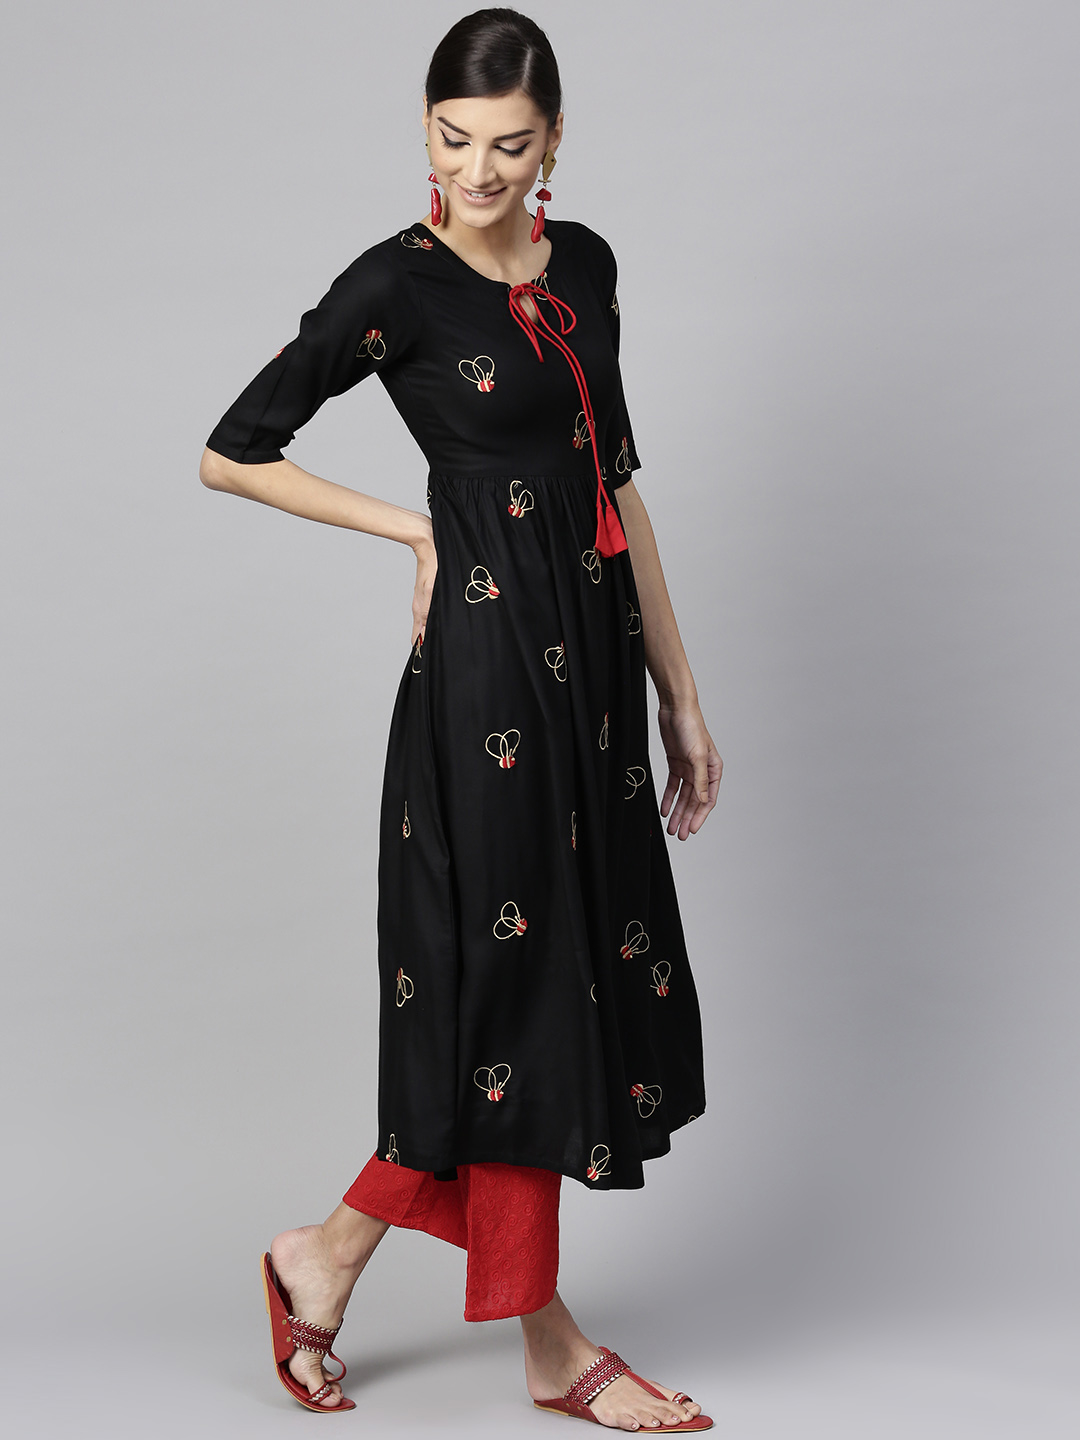 Women's New Stylish Designer Black Rayon Kurtis With Plazzo